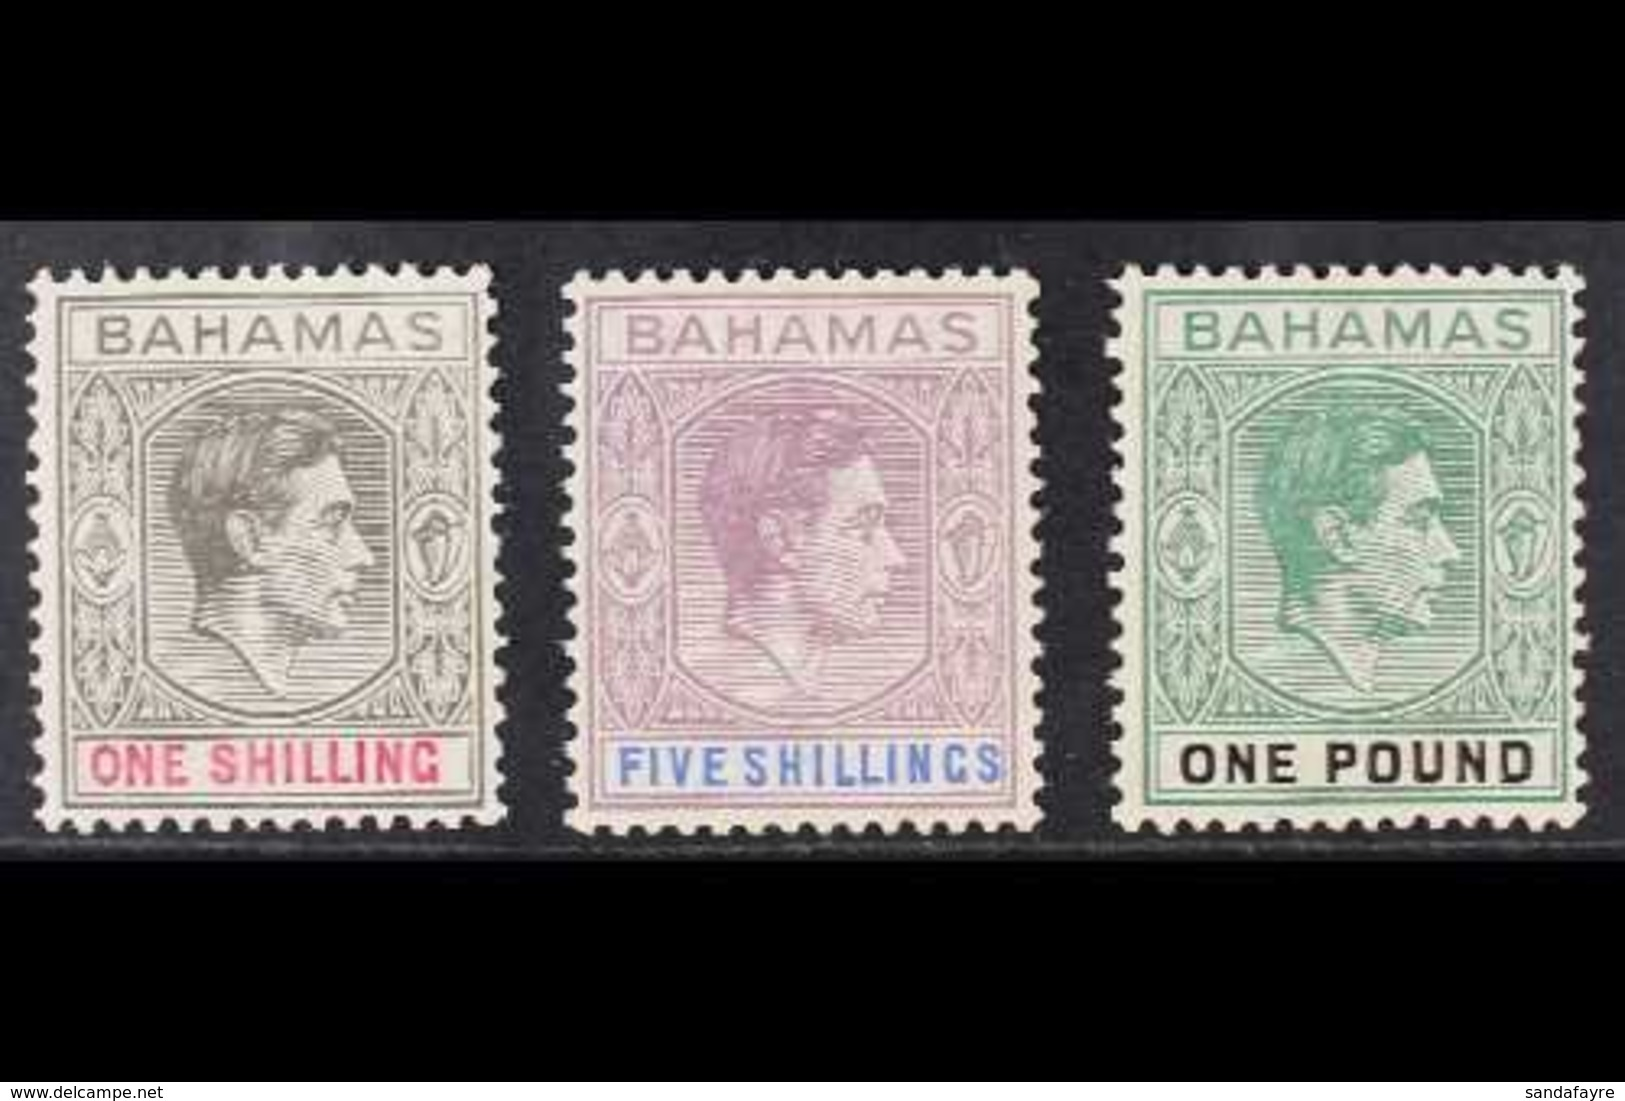 1938 1s Grey-black & Carmine, 5s Lilac & Blue And £1 Deep Grey-green & Black Original Printings On Thick Chalky Paper, S - Bahamas (...-1973)